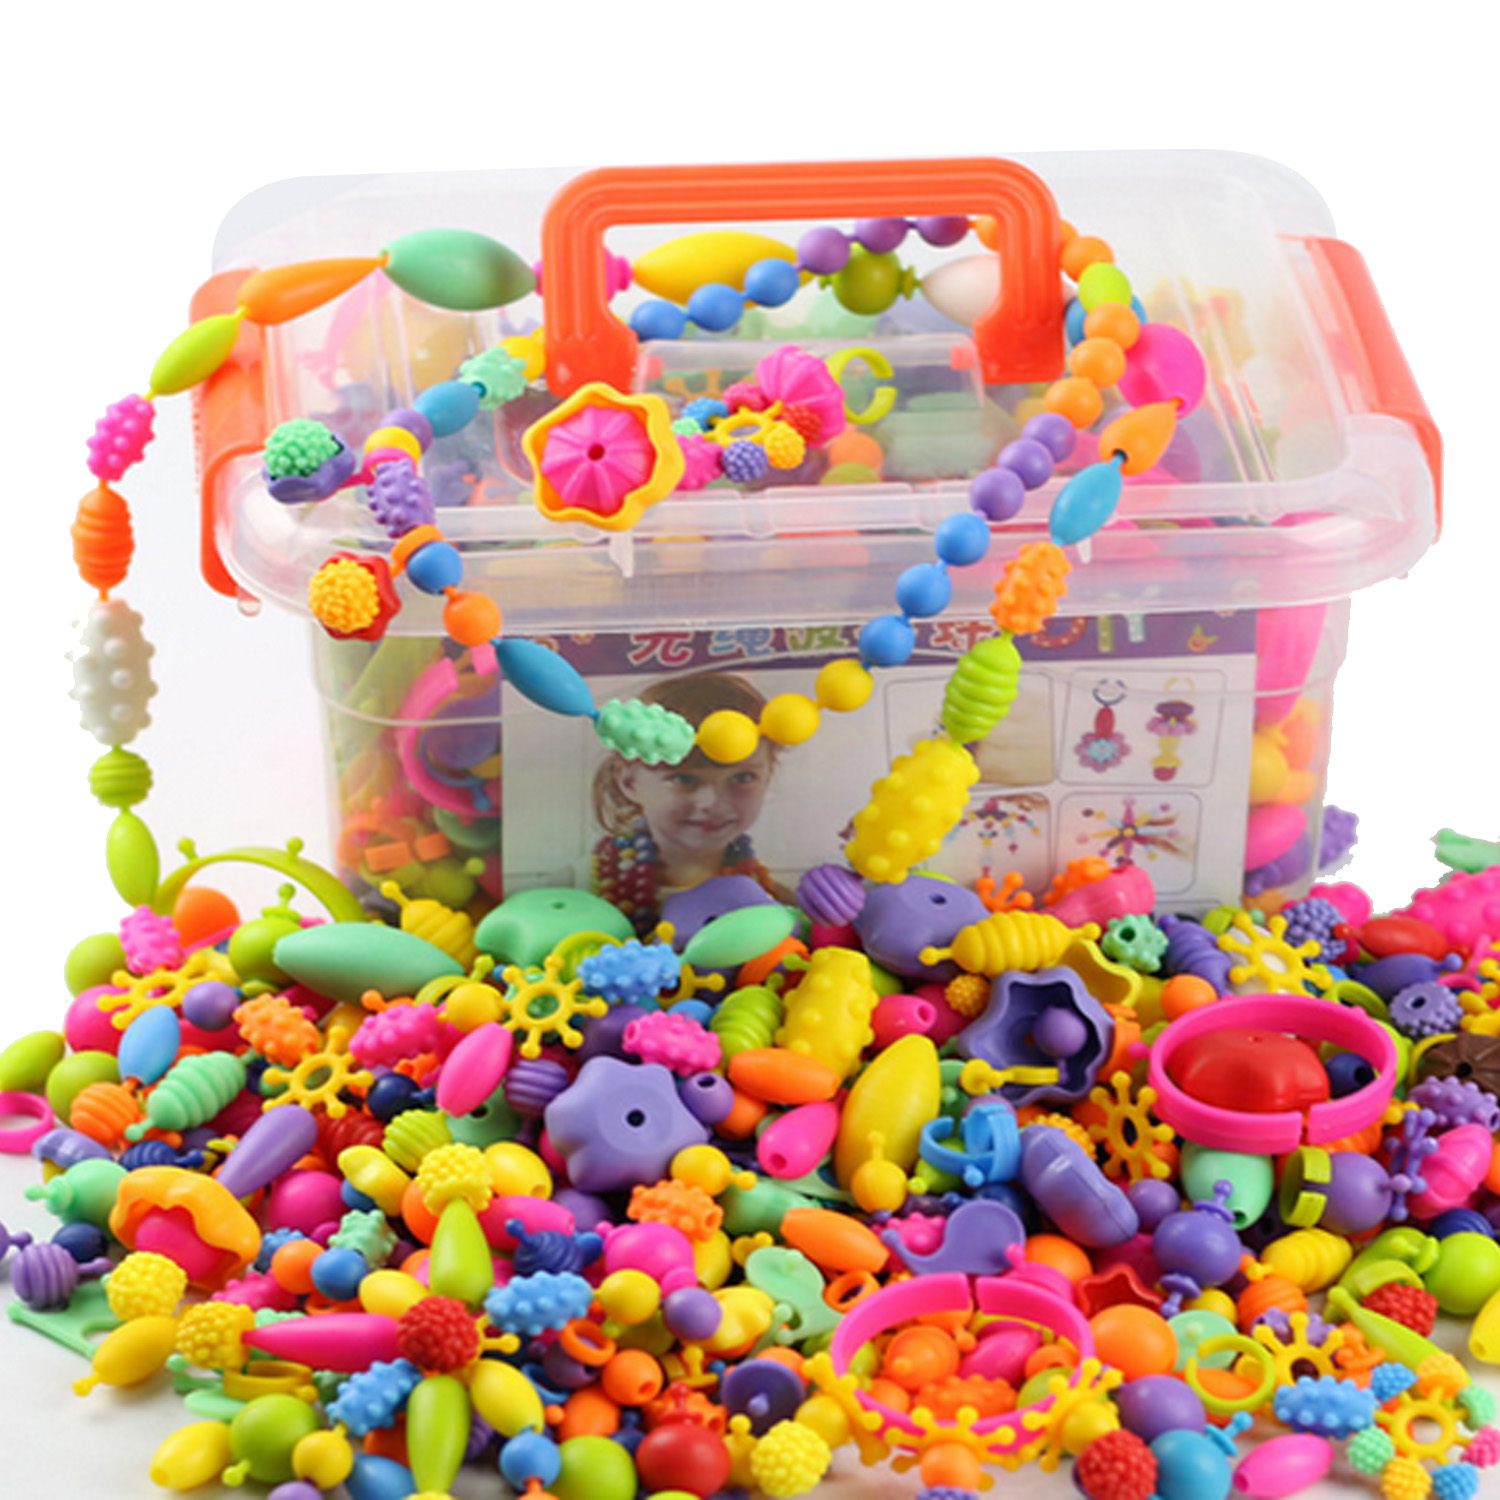 Kids 485PCS Colorful Cartoon Plastic Pop Snap Beads Toy DIY Pop Beads Bracelet Necklace Jewelry Making Craft Accessories Toy